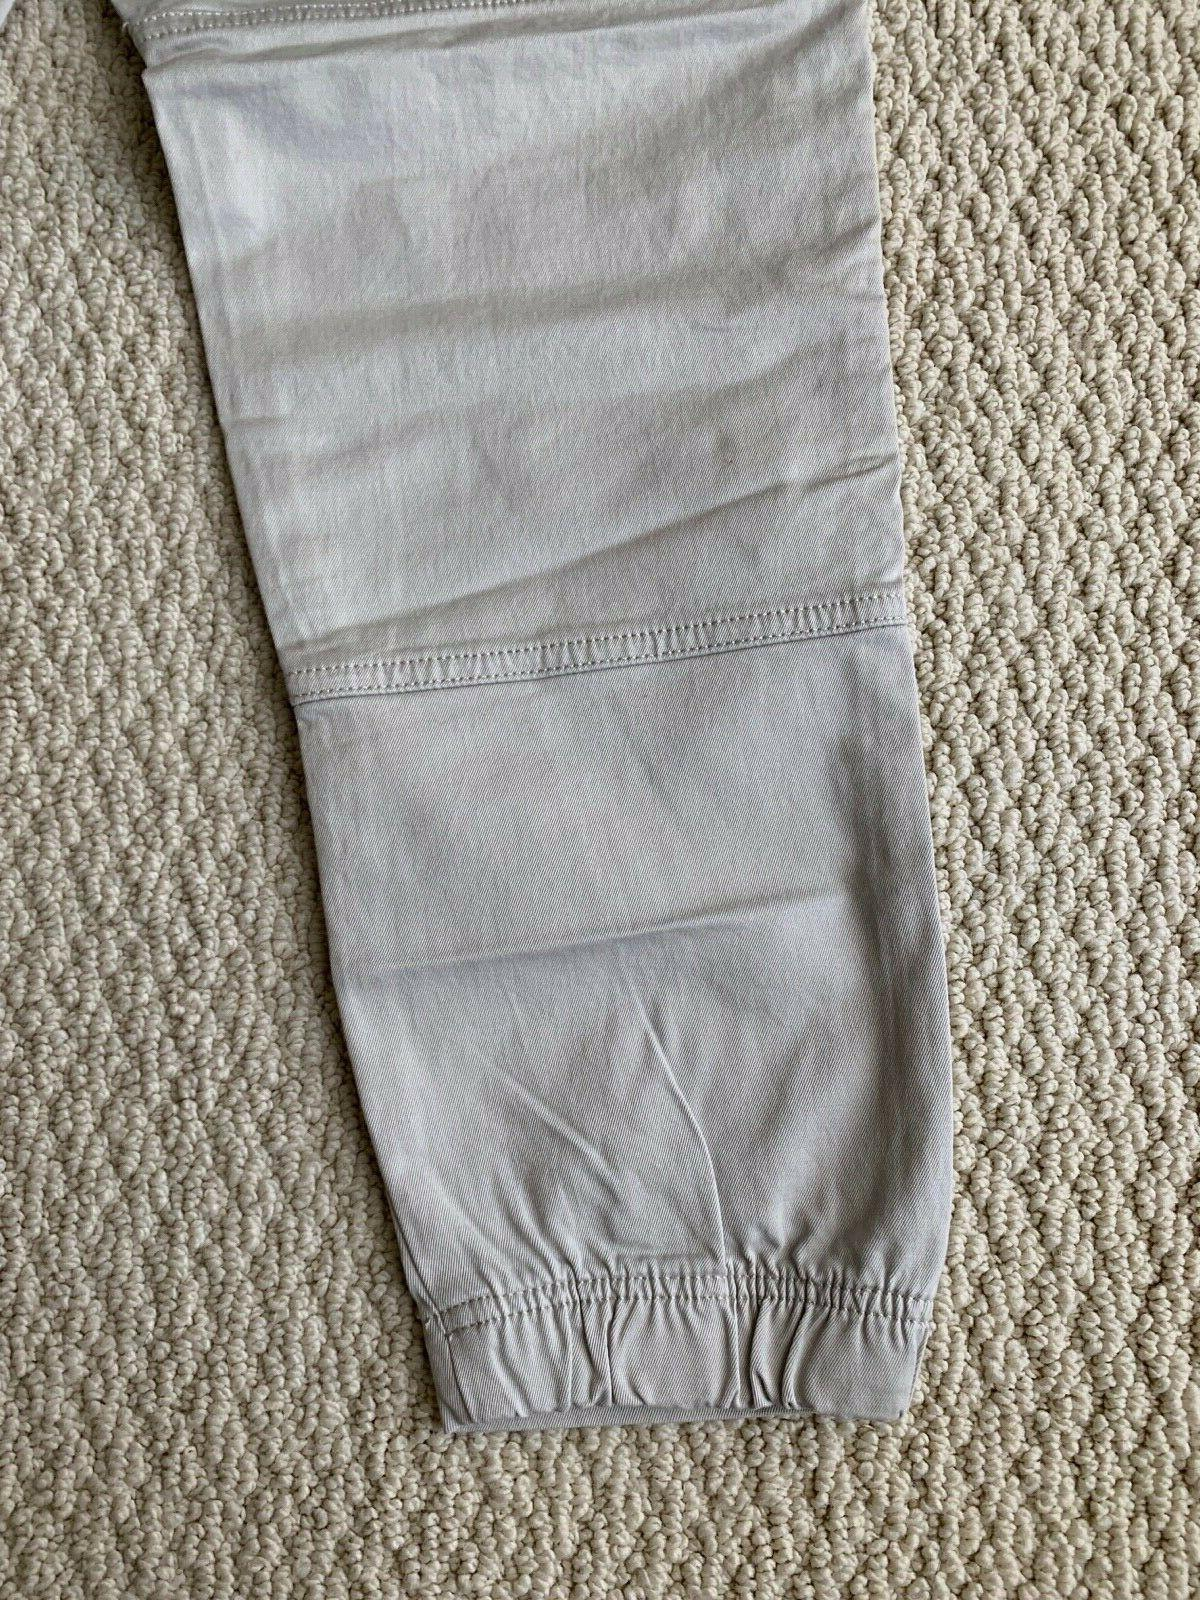 NWT Gray Utility Cargo Pocket Tapered Jogger Pants SIZE S-2XL